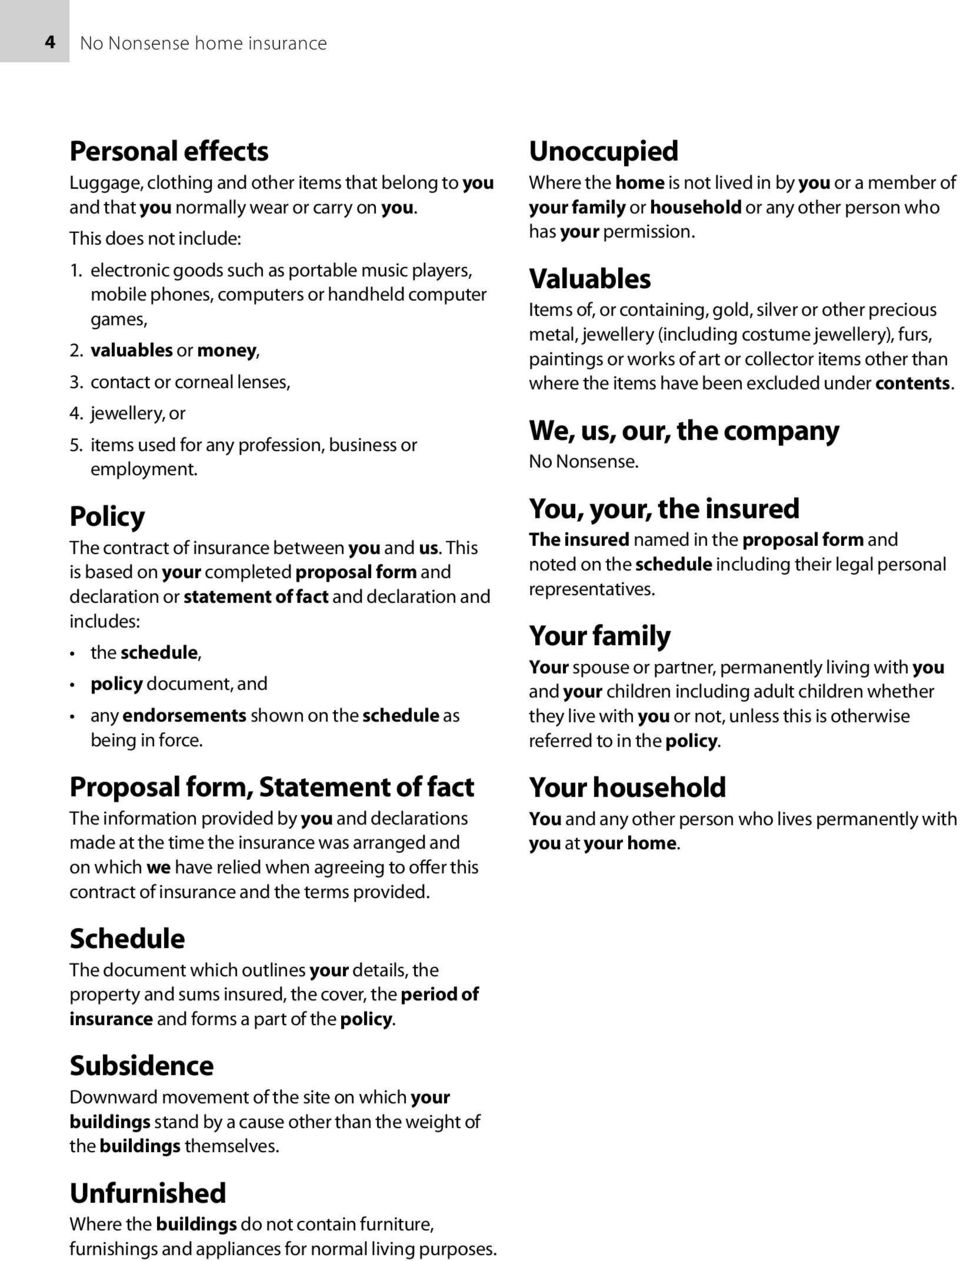 items used for any profession, business or employment. Policy The contract of insurance between you and us.